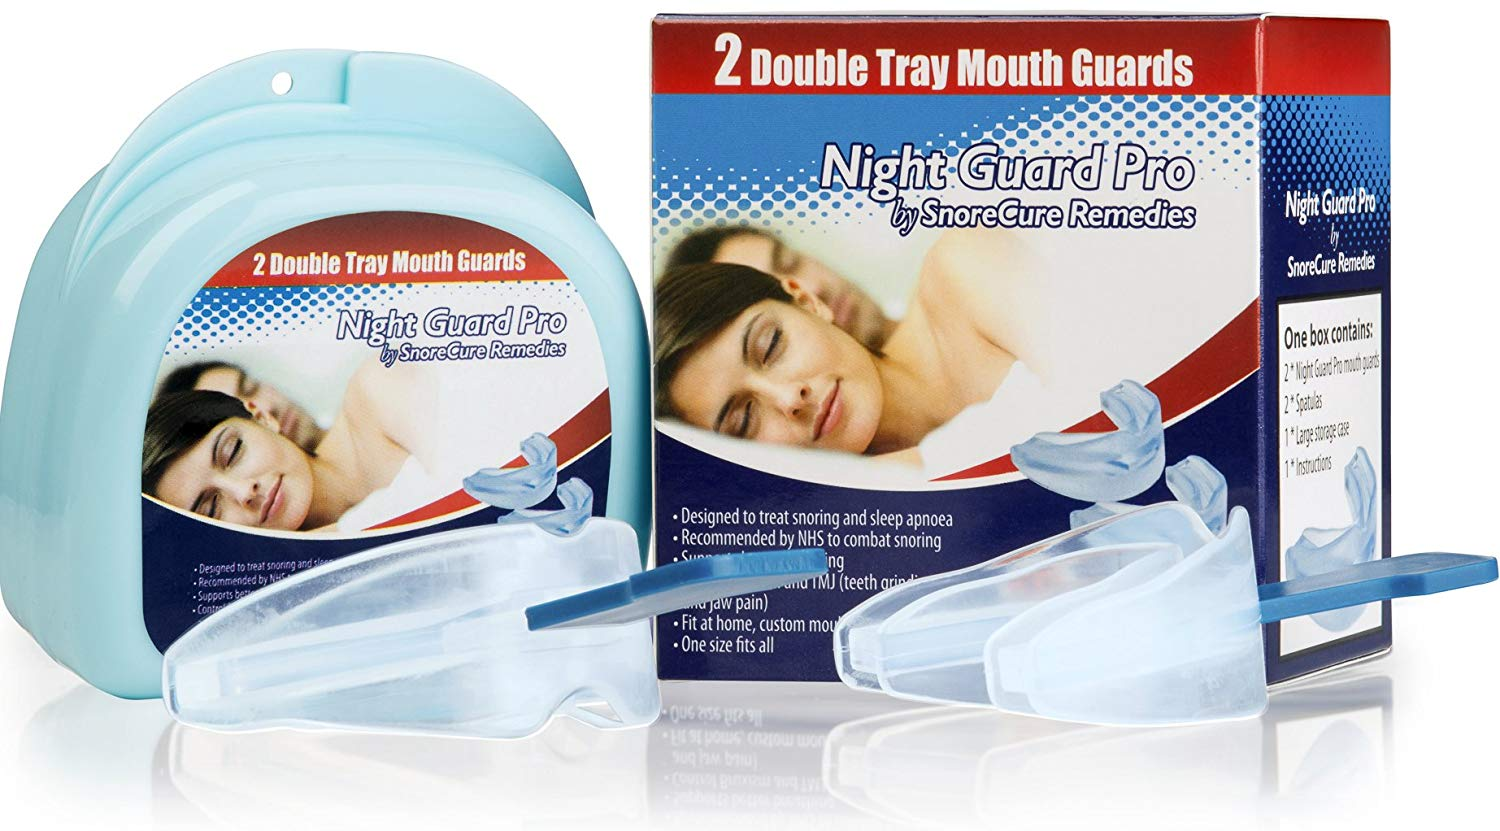 Mouth Guard (2 Pack) Teeth Grinding